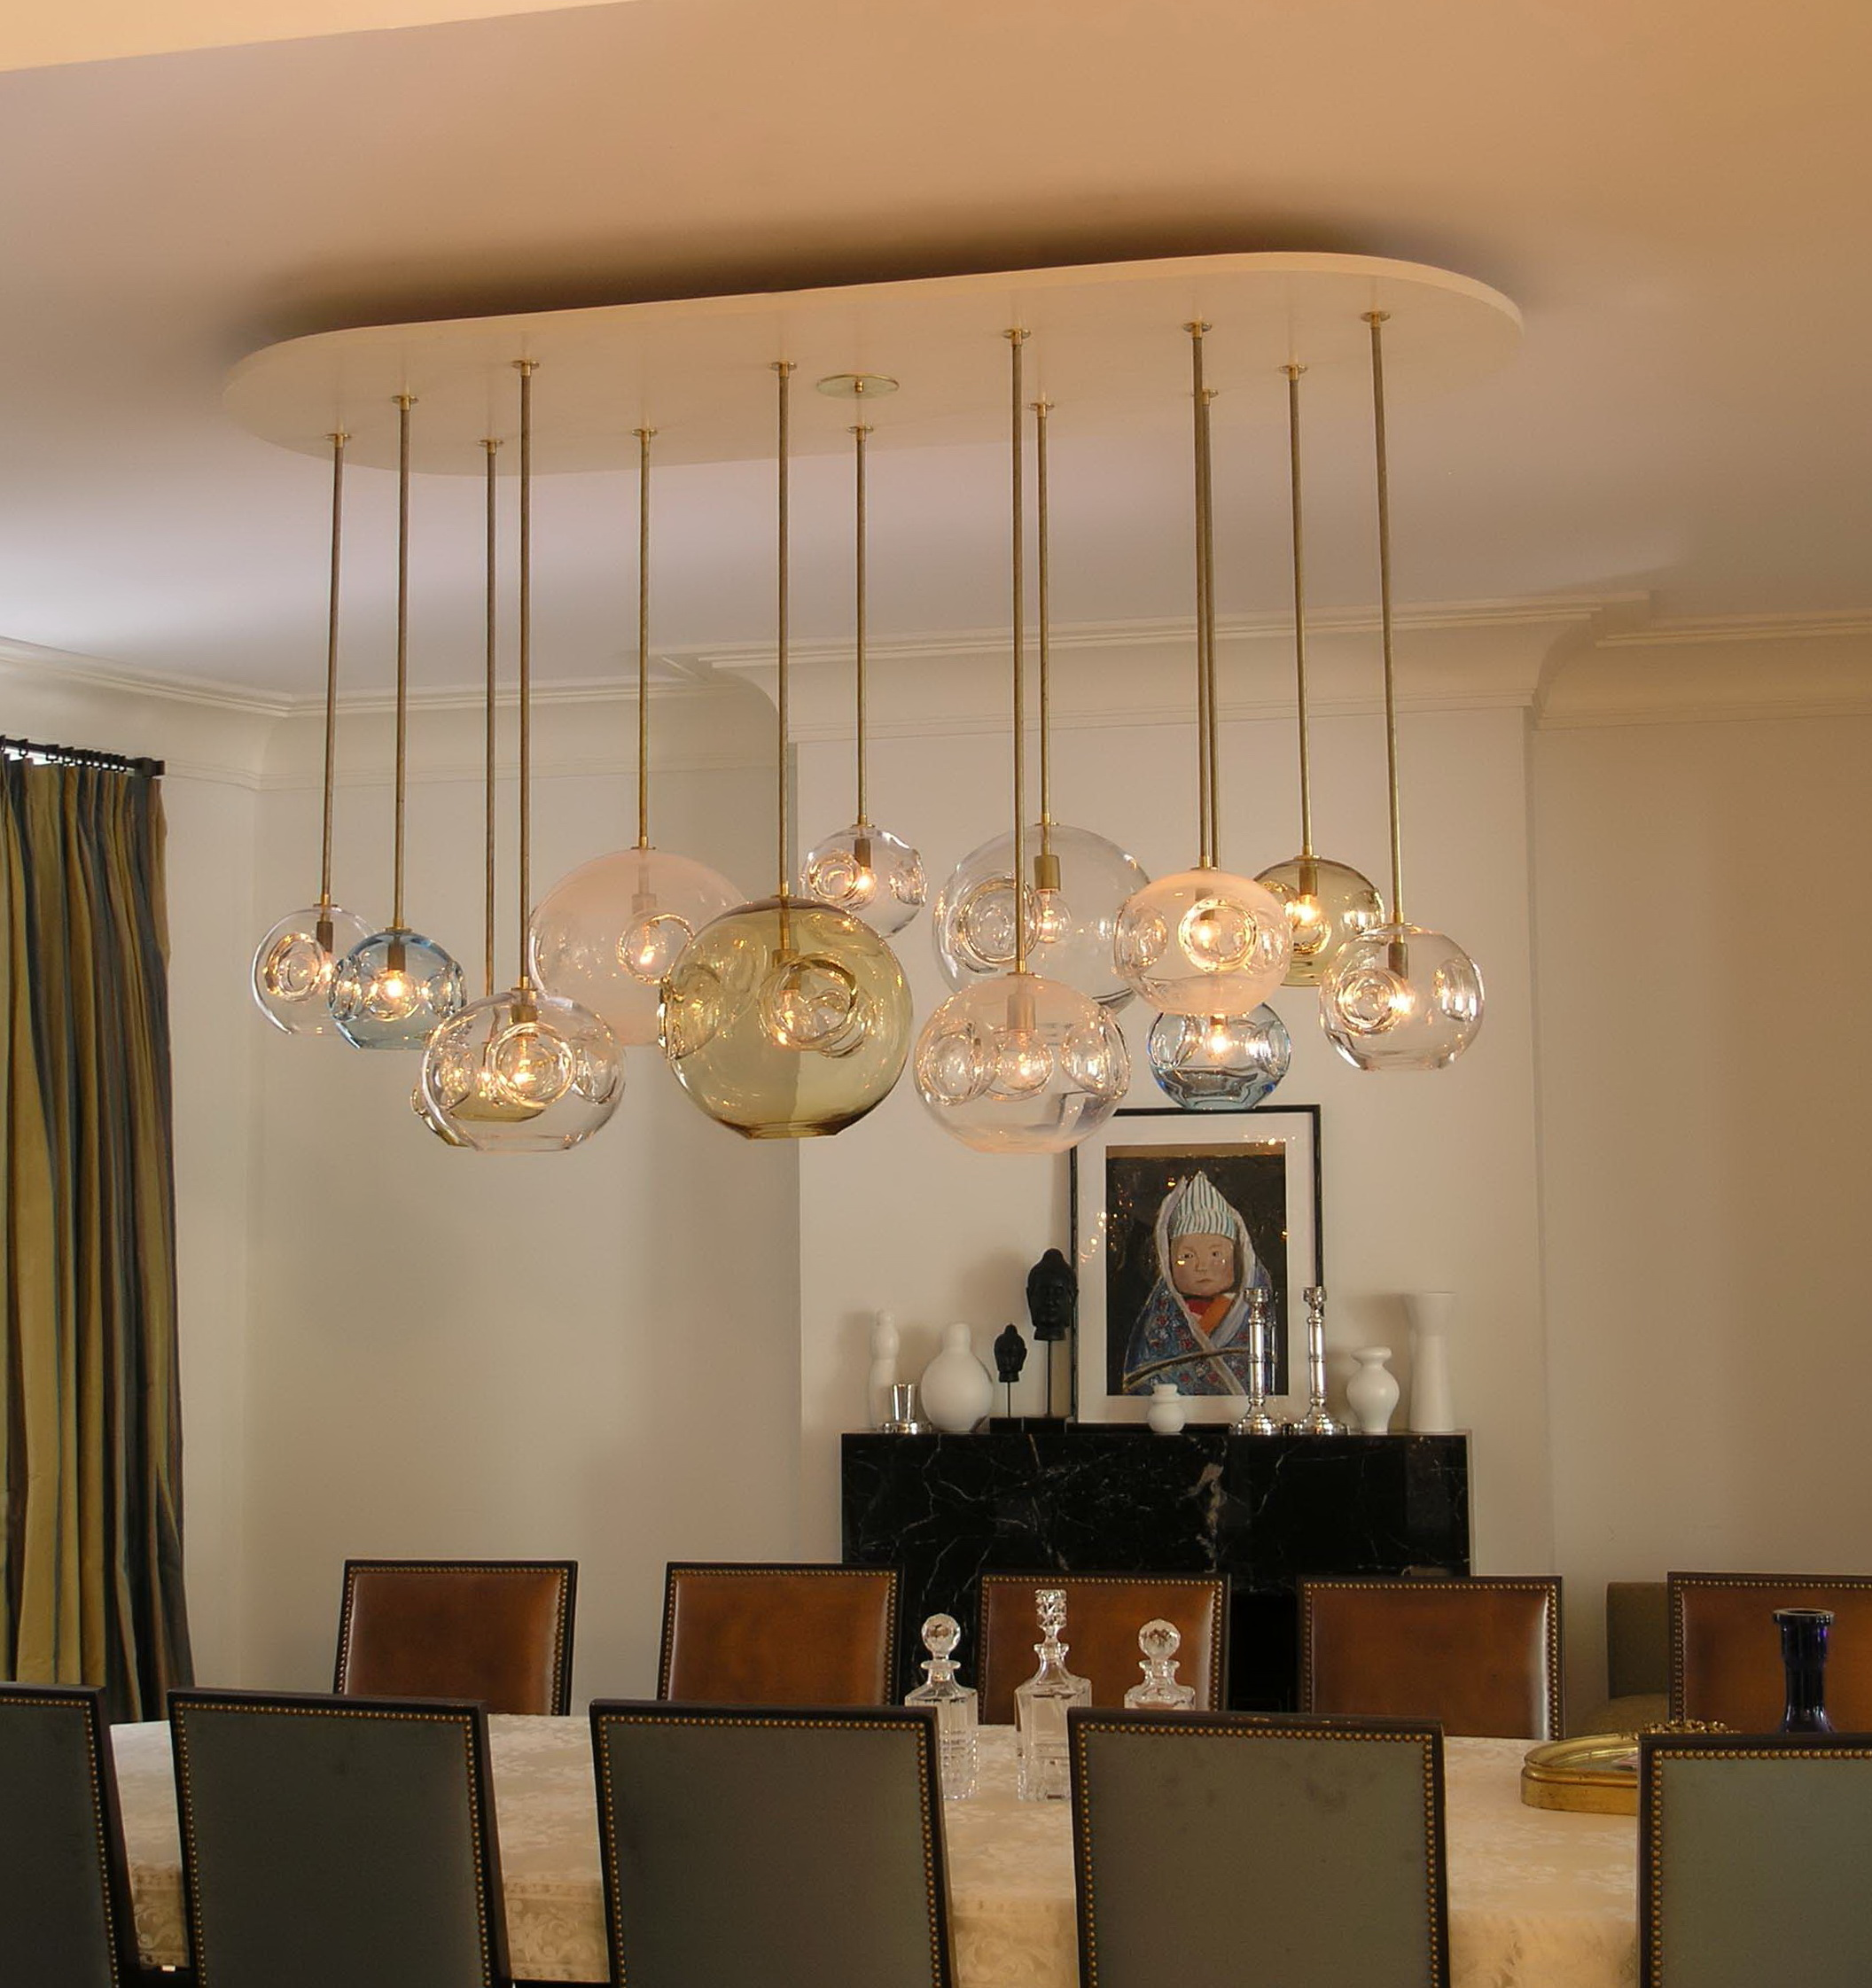 Modern Chandeliers Contemporary Dining Room: Modern Contemporary Dining Room Chandeliers